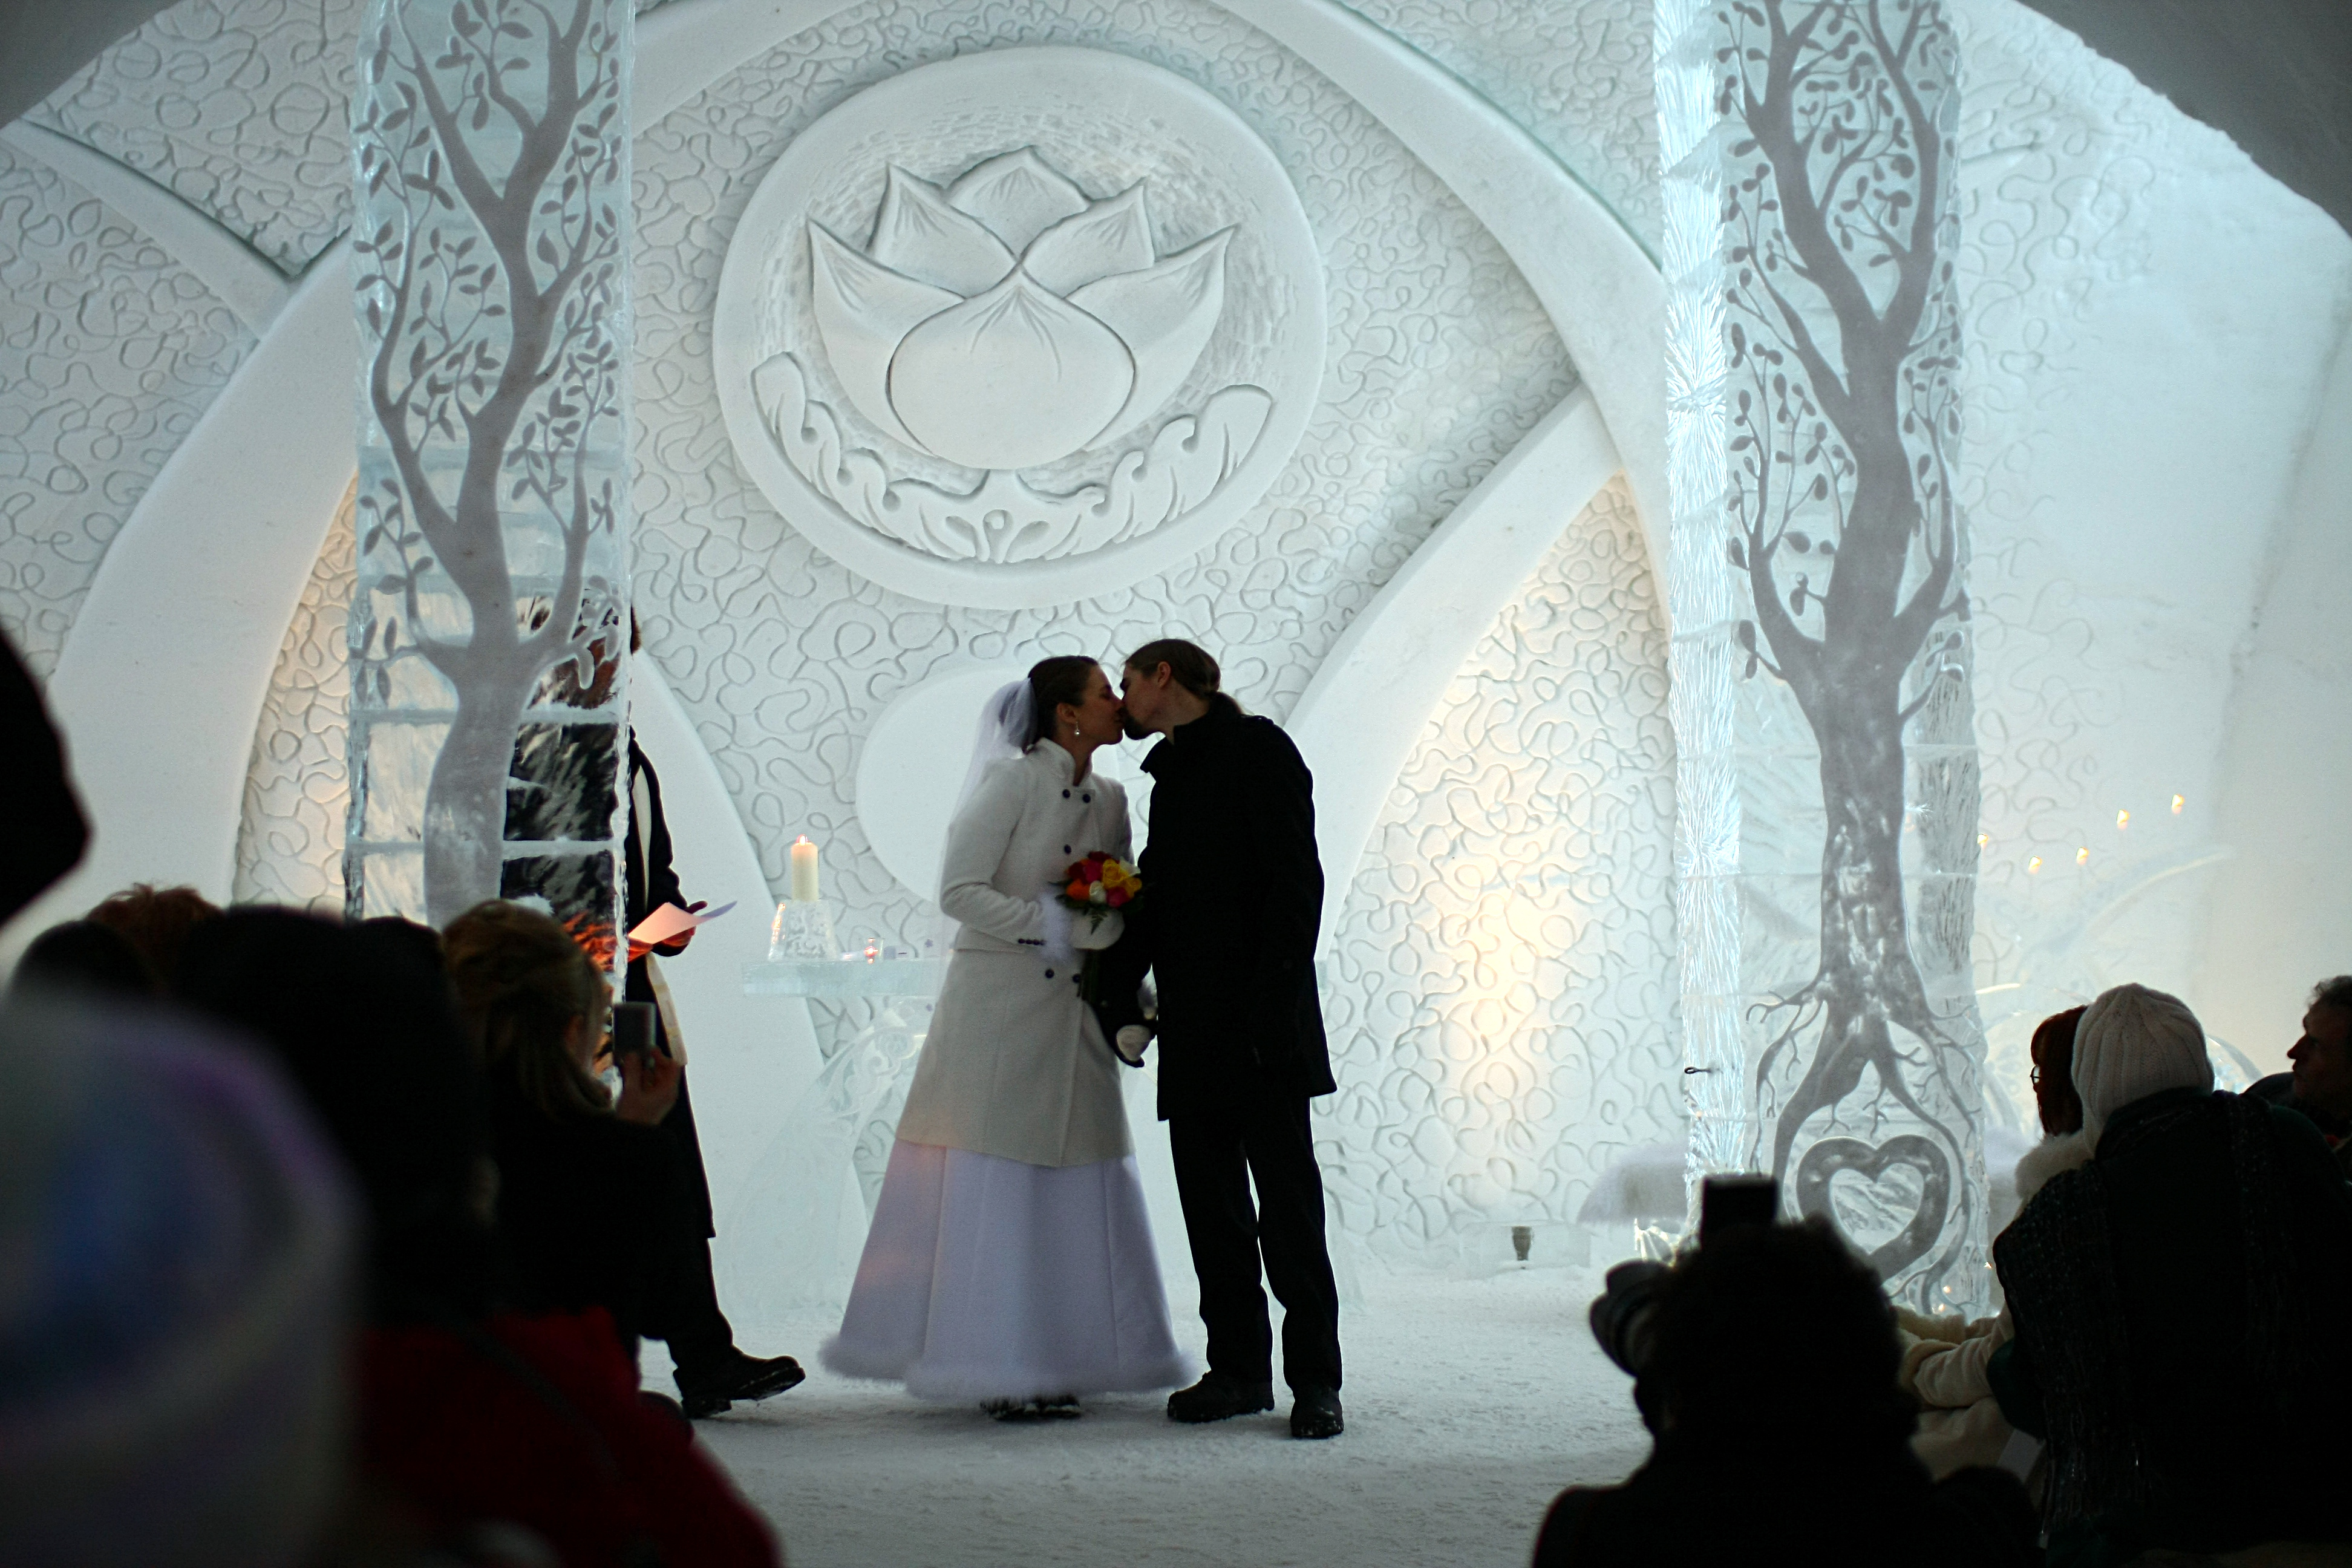 Astounding Ice Hotel In Quebec The First One In North